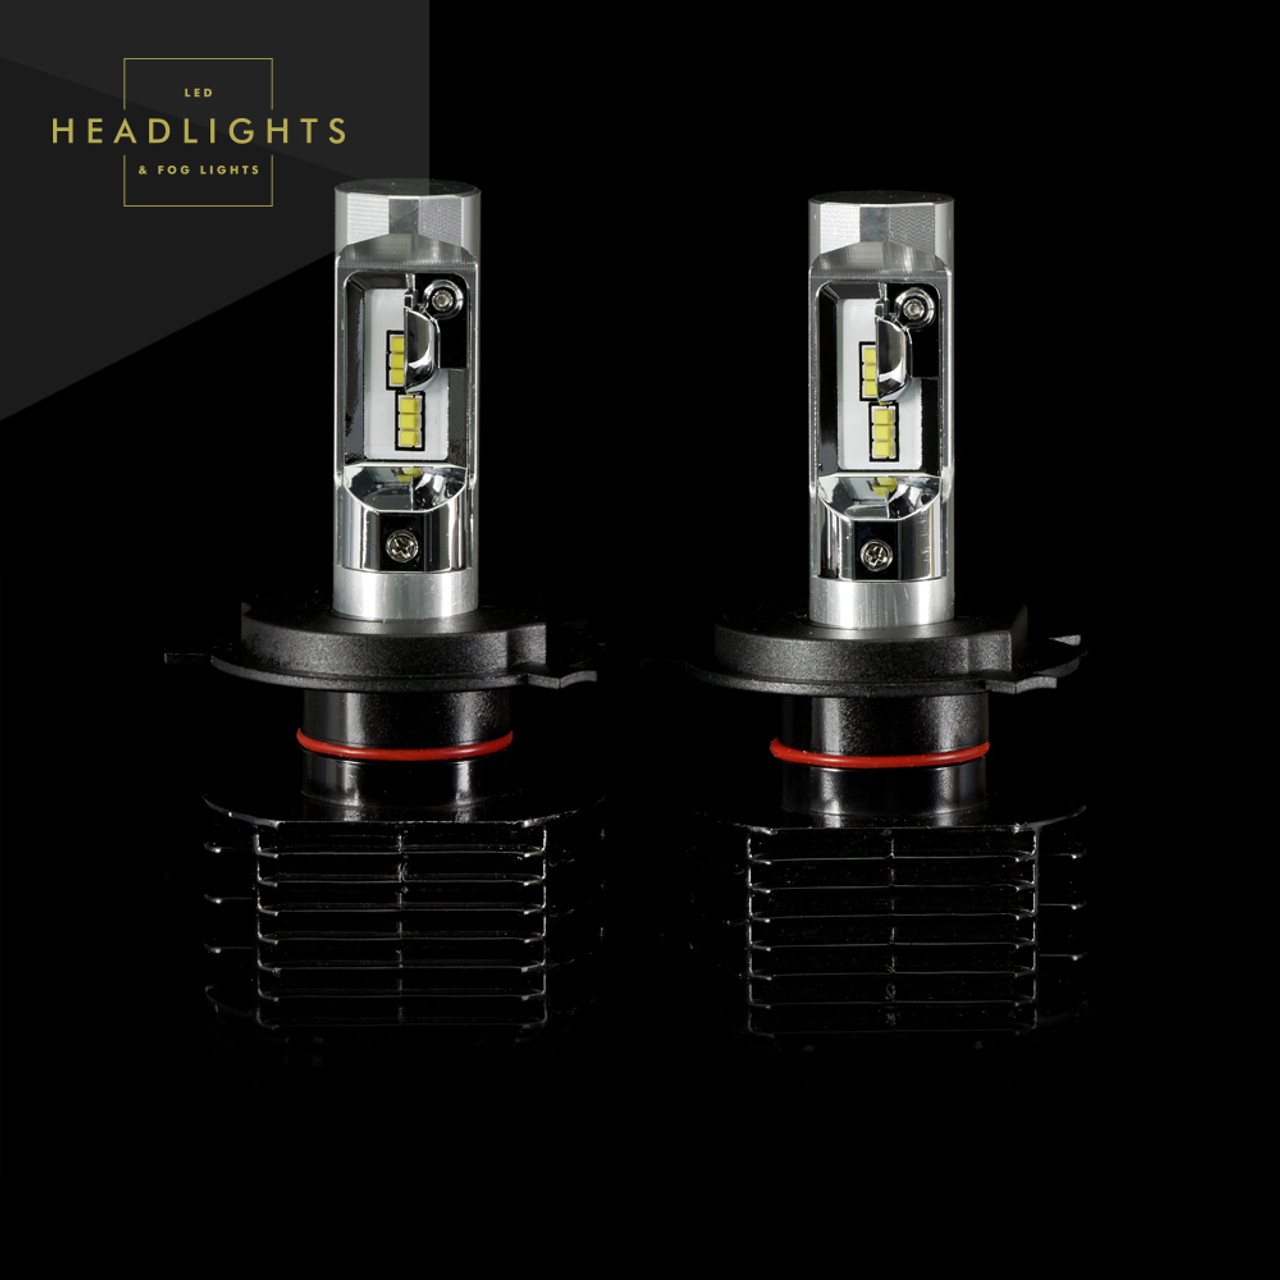 gtr lighting ultra series led headlight bulbs h4 9003 3rd generation [ 1280 x 1280 Pixel ]